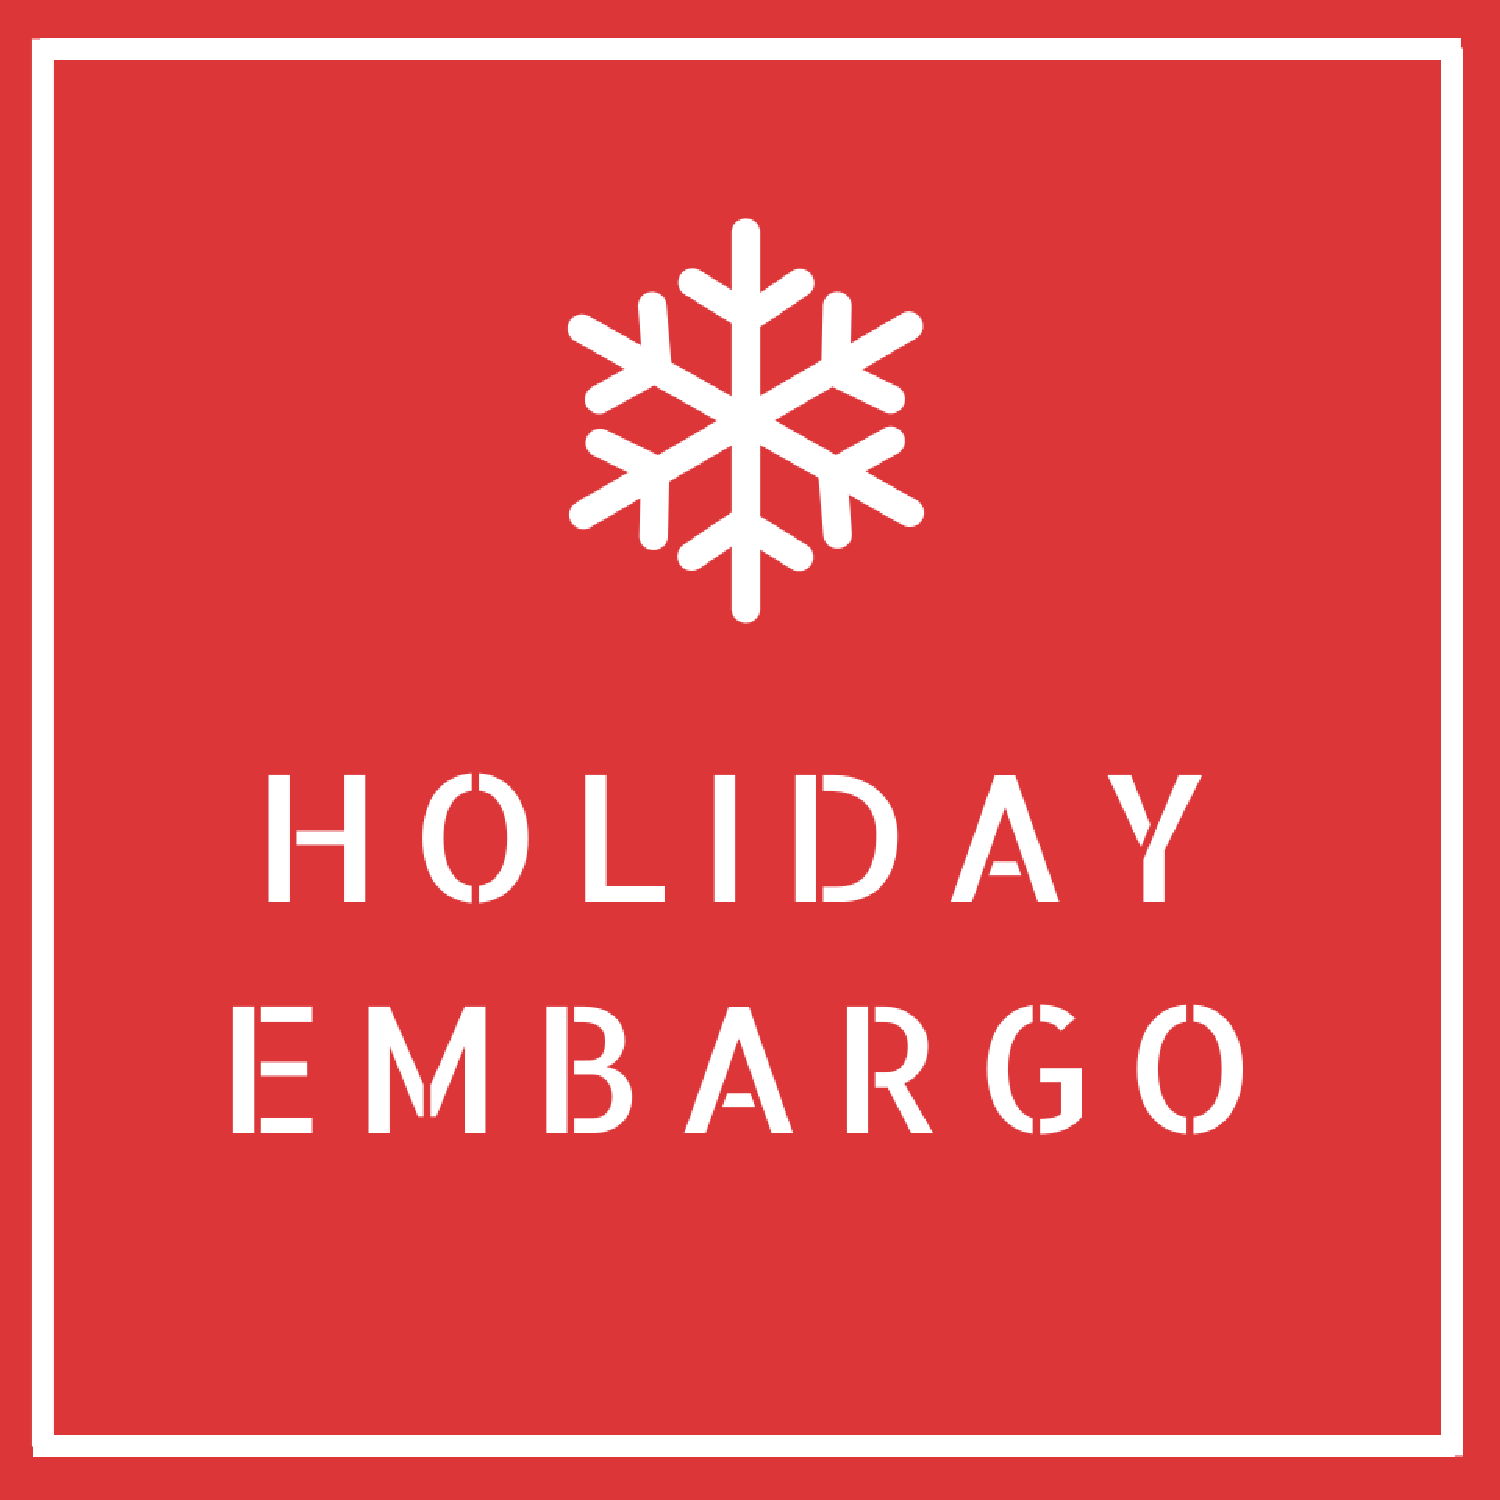 Holiday Permitting Embargo